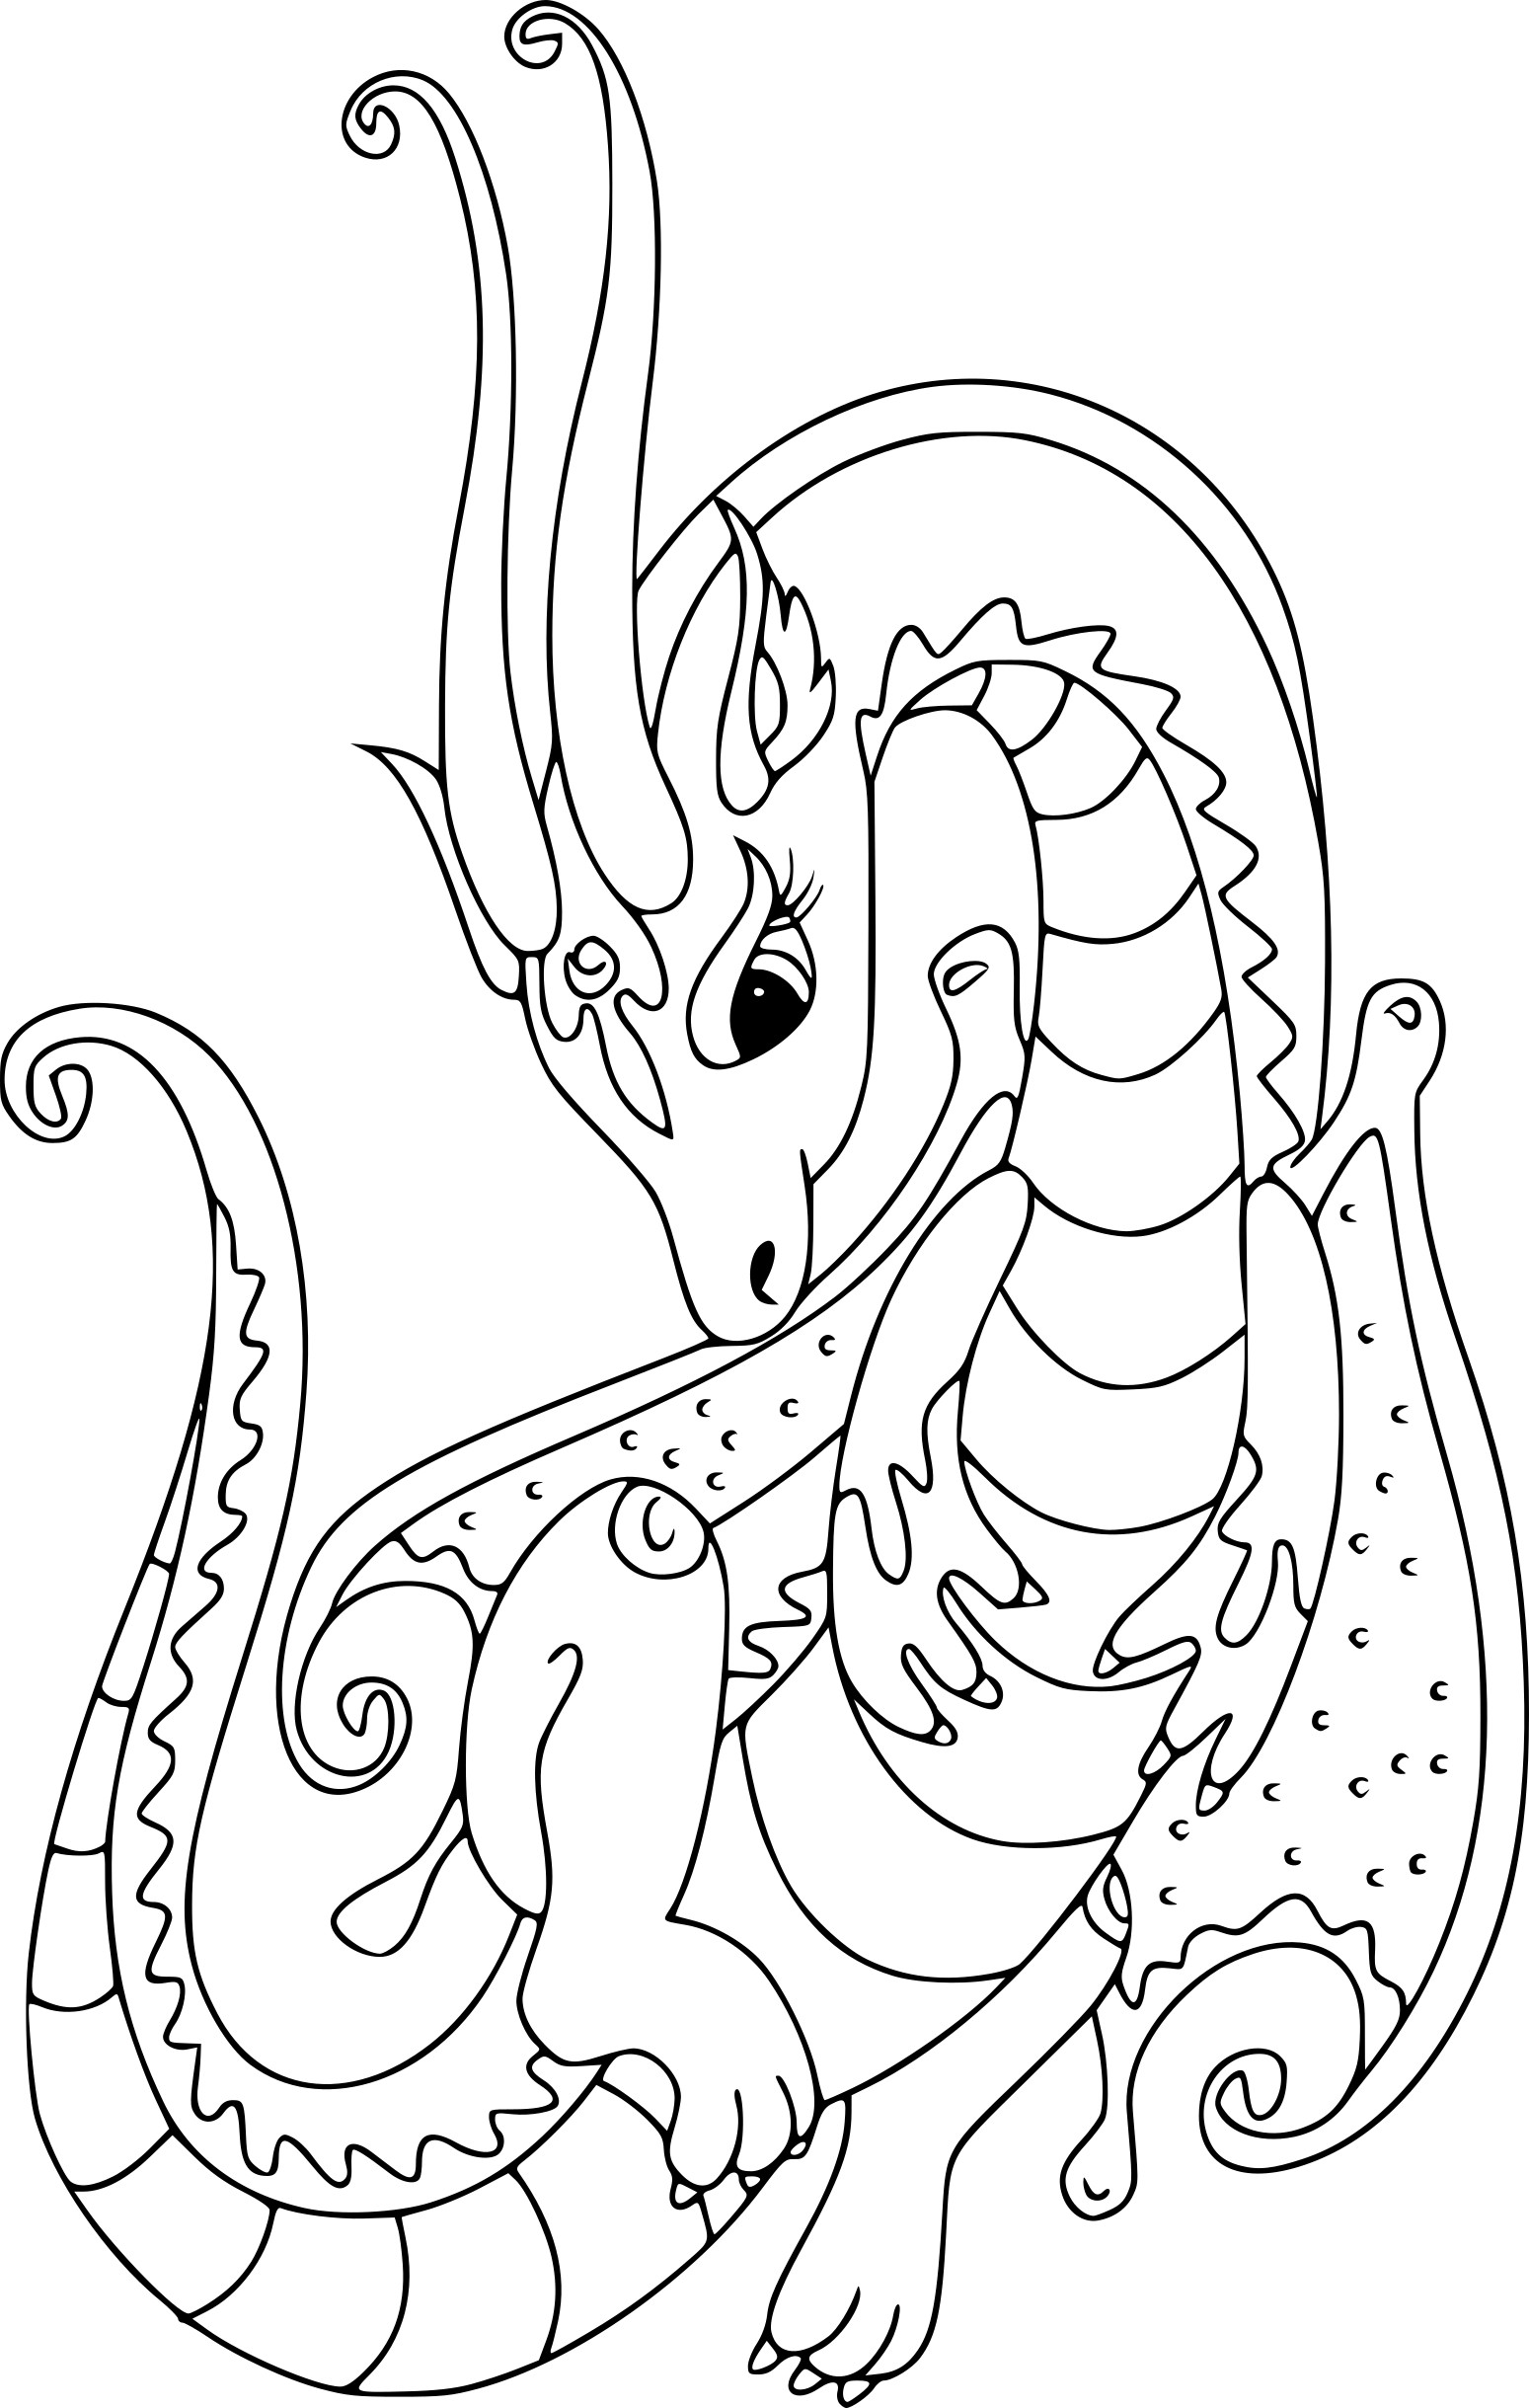 Coloriage dragon pour fille imprimer - Coloriages de dragons ...